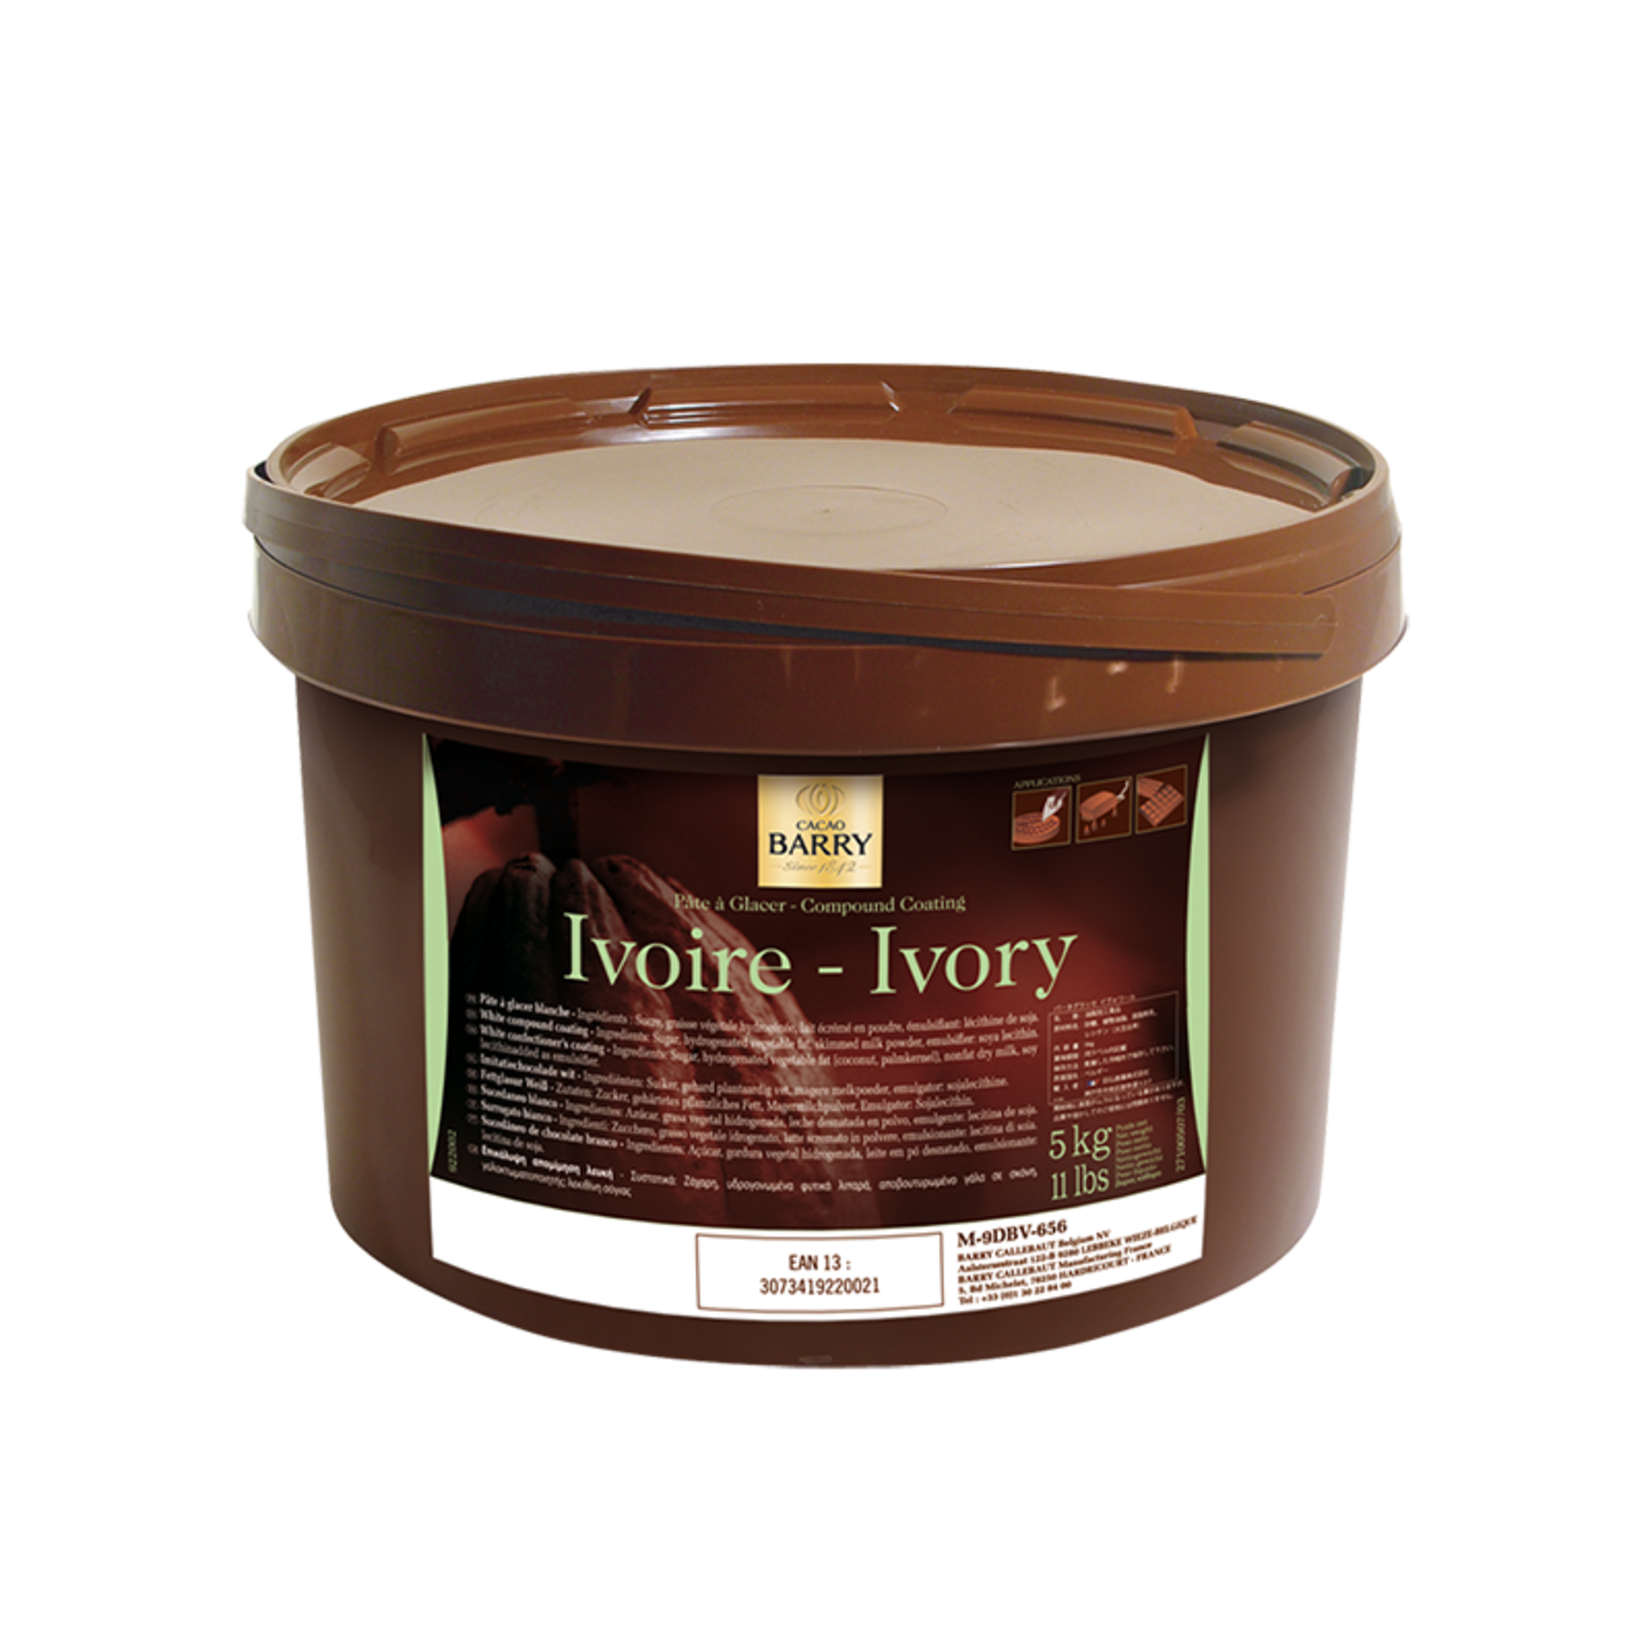 Cacao Barry Cacao Barry - Pate Glacer Ivoire/White - 5kg/11lb, M-9DBV-656